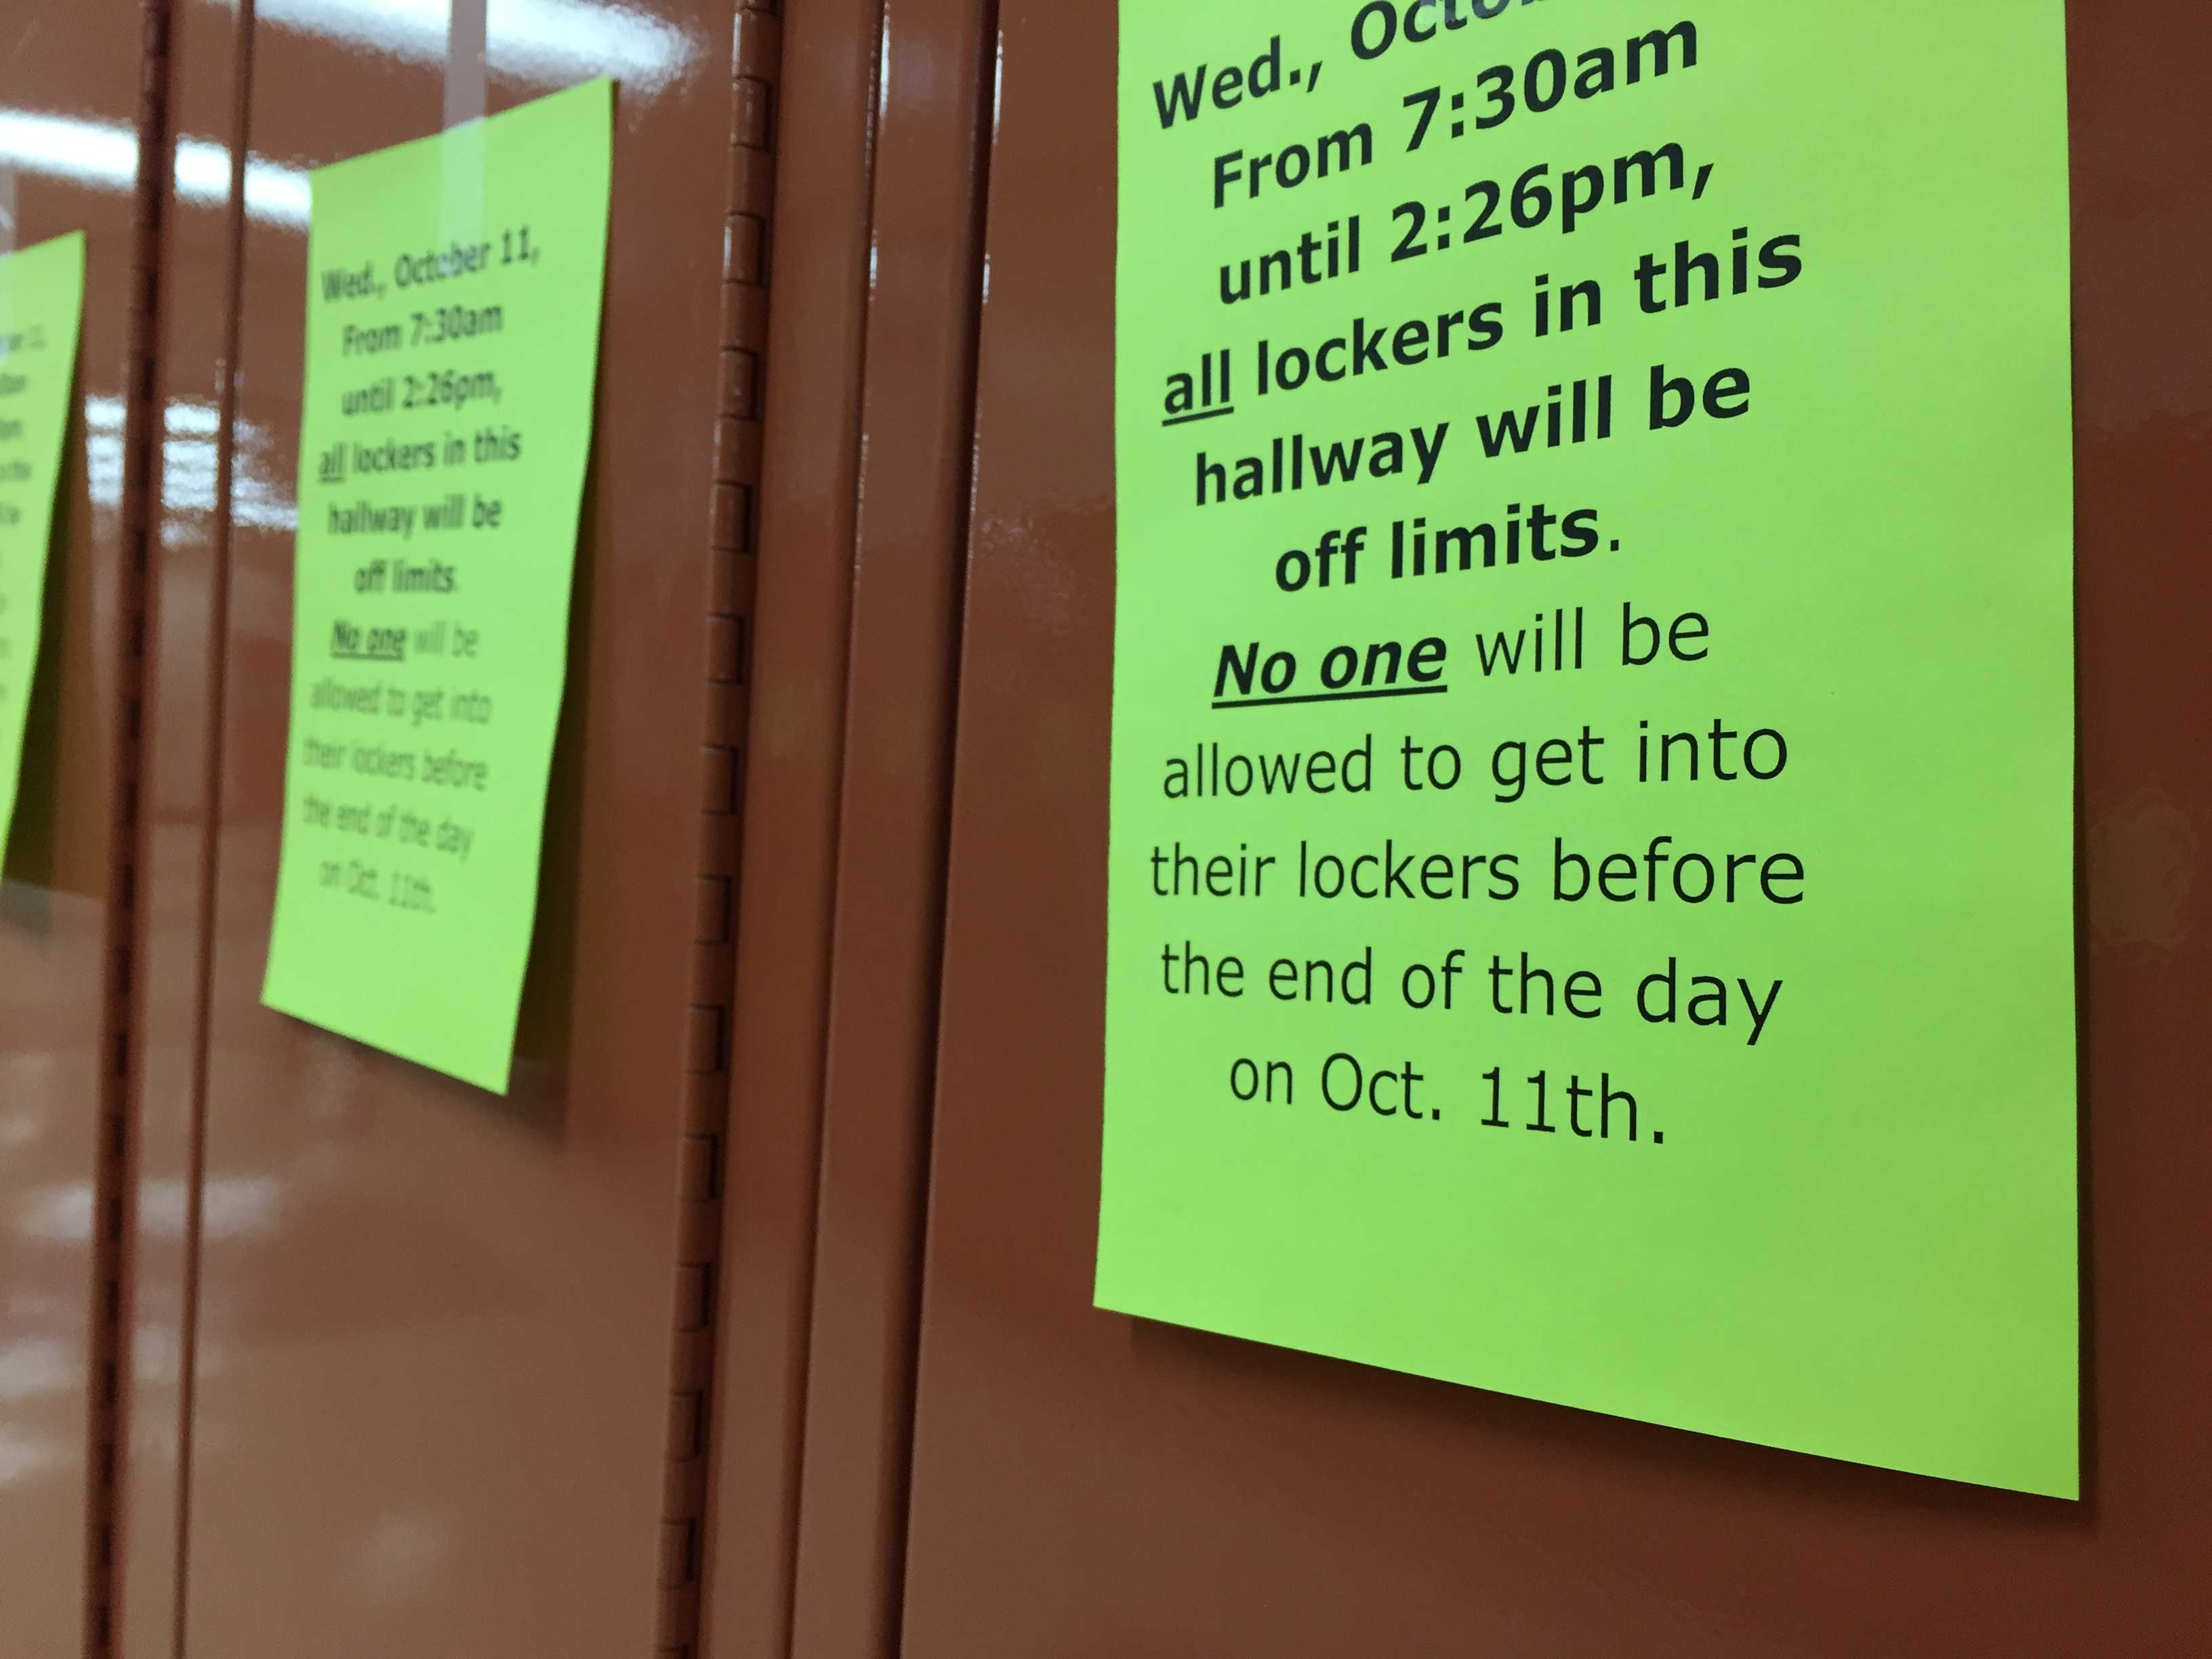 Hallways are blocked off to provide a quiet environment for test takers.